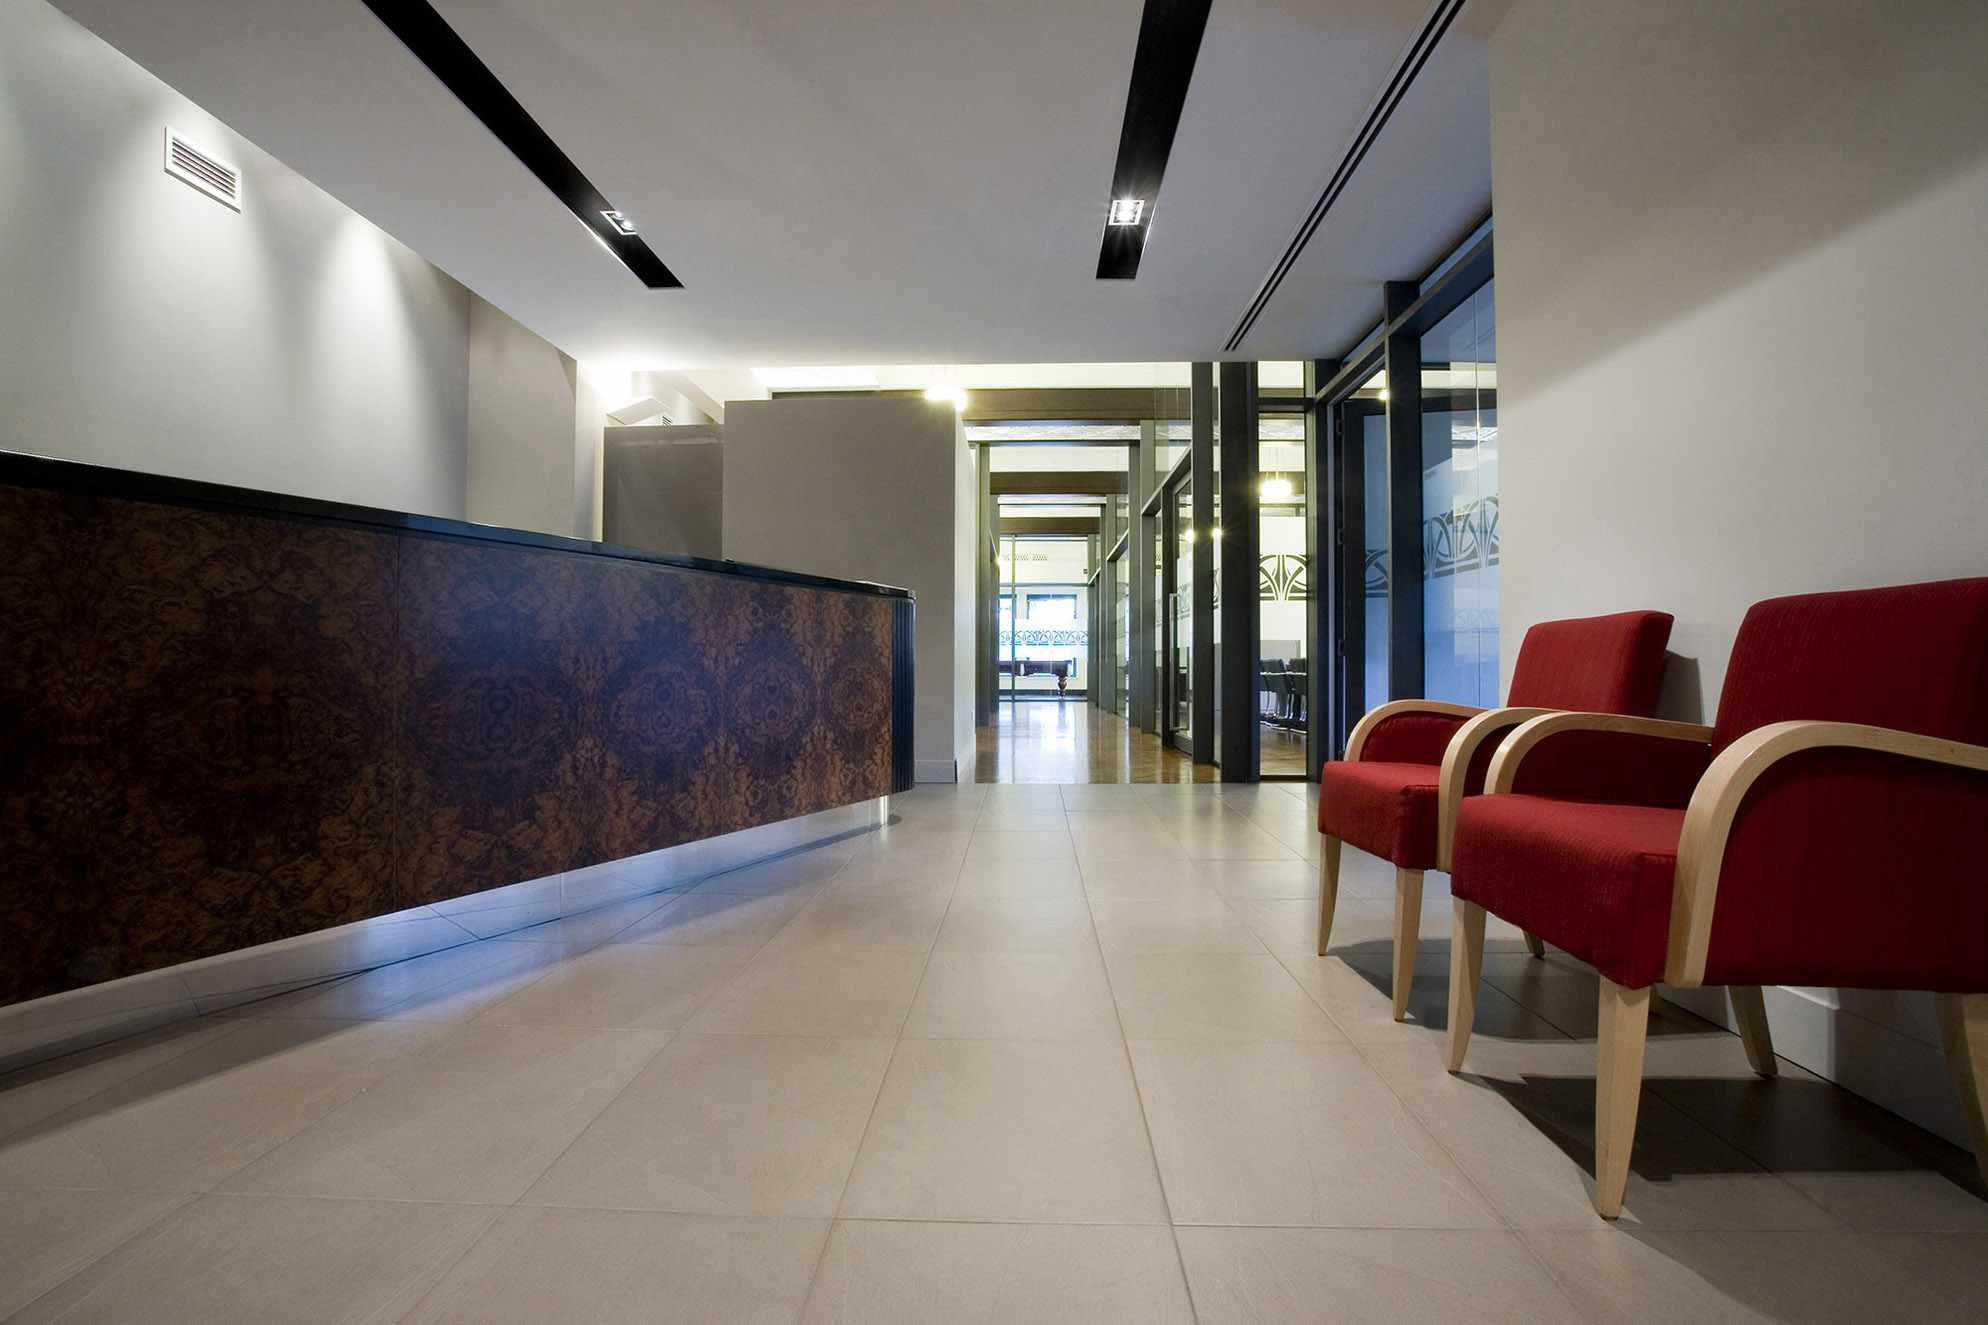 Law Office Interior Design   Wisewoulds Lawyers Legal